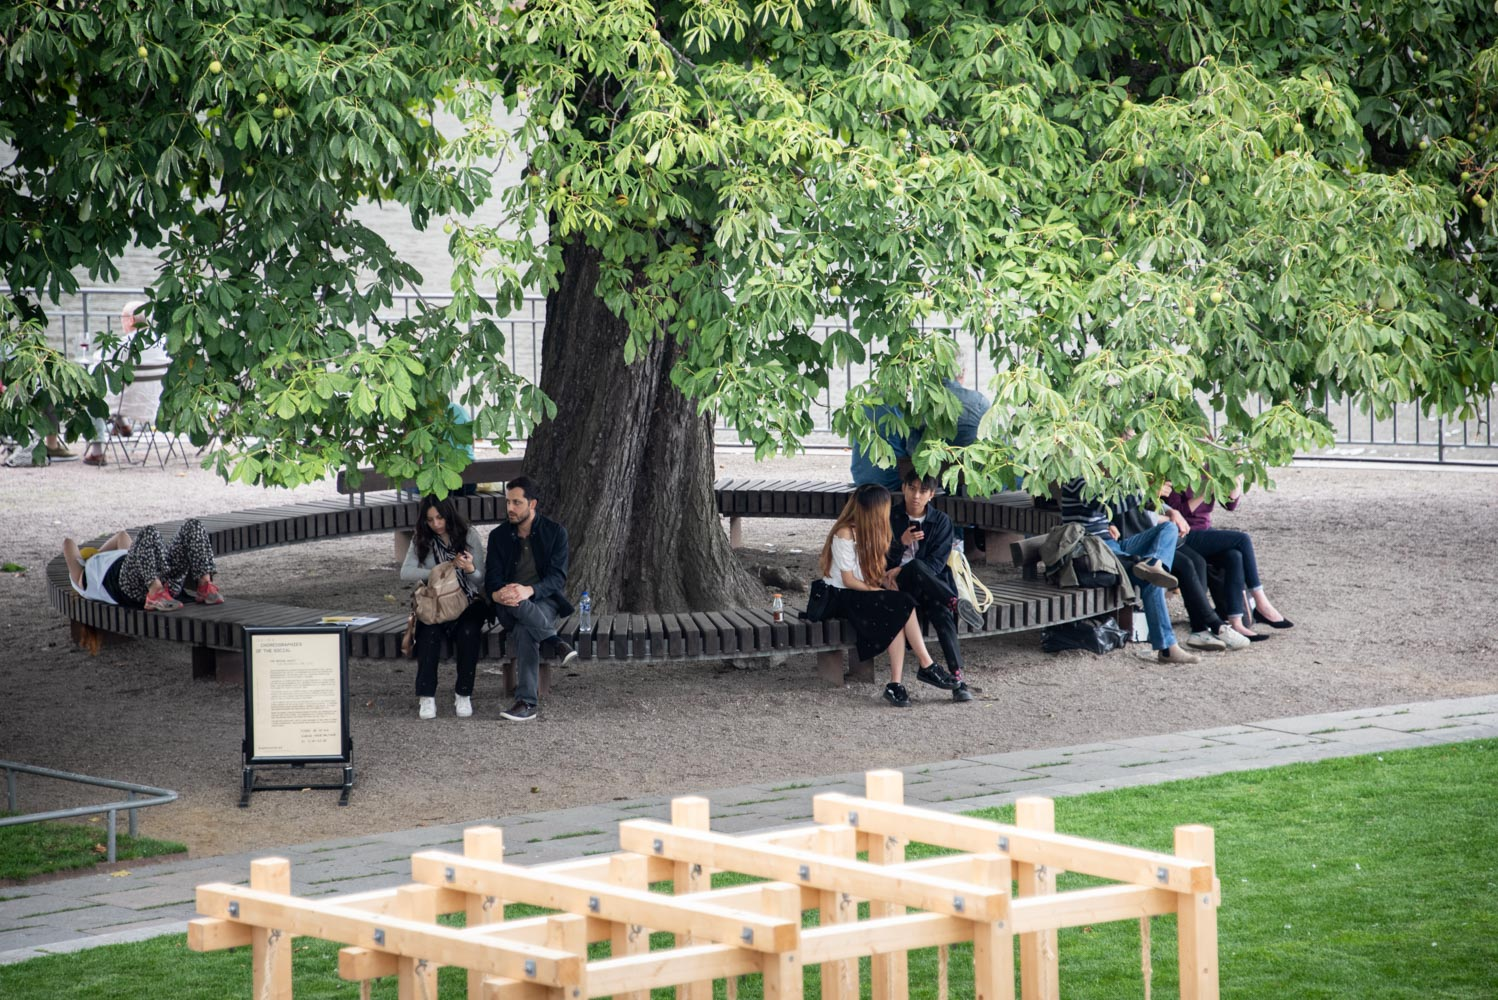 People in a park, sitting next to a large tree. In the forefront a tree construction.